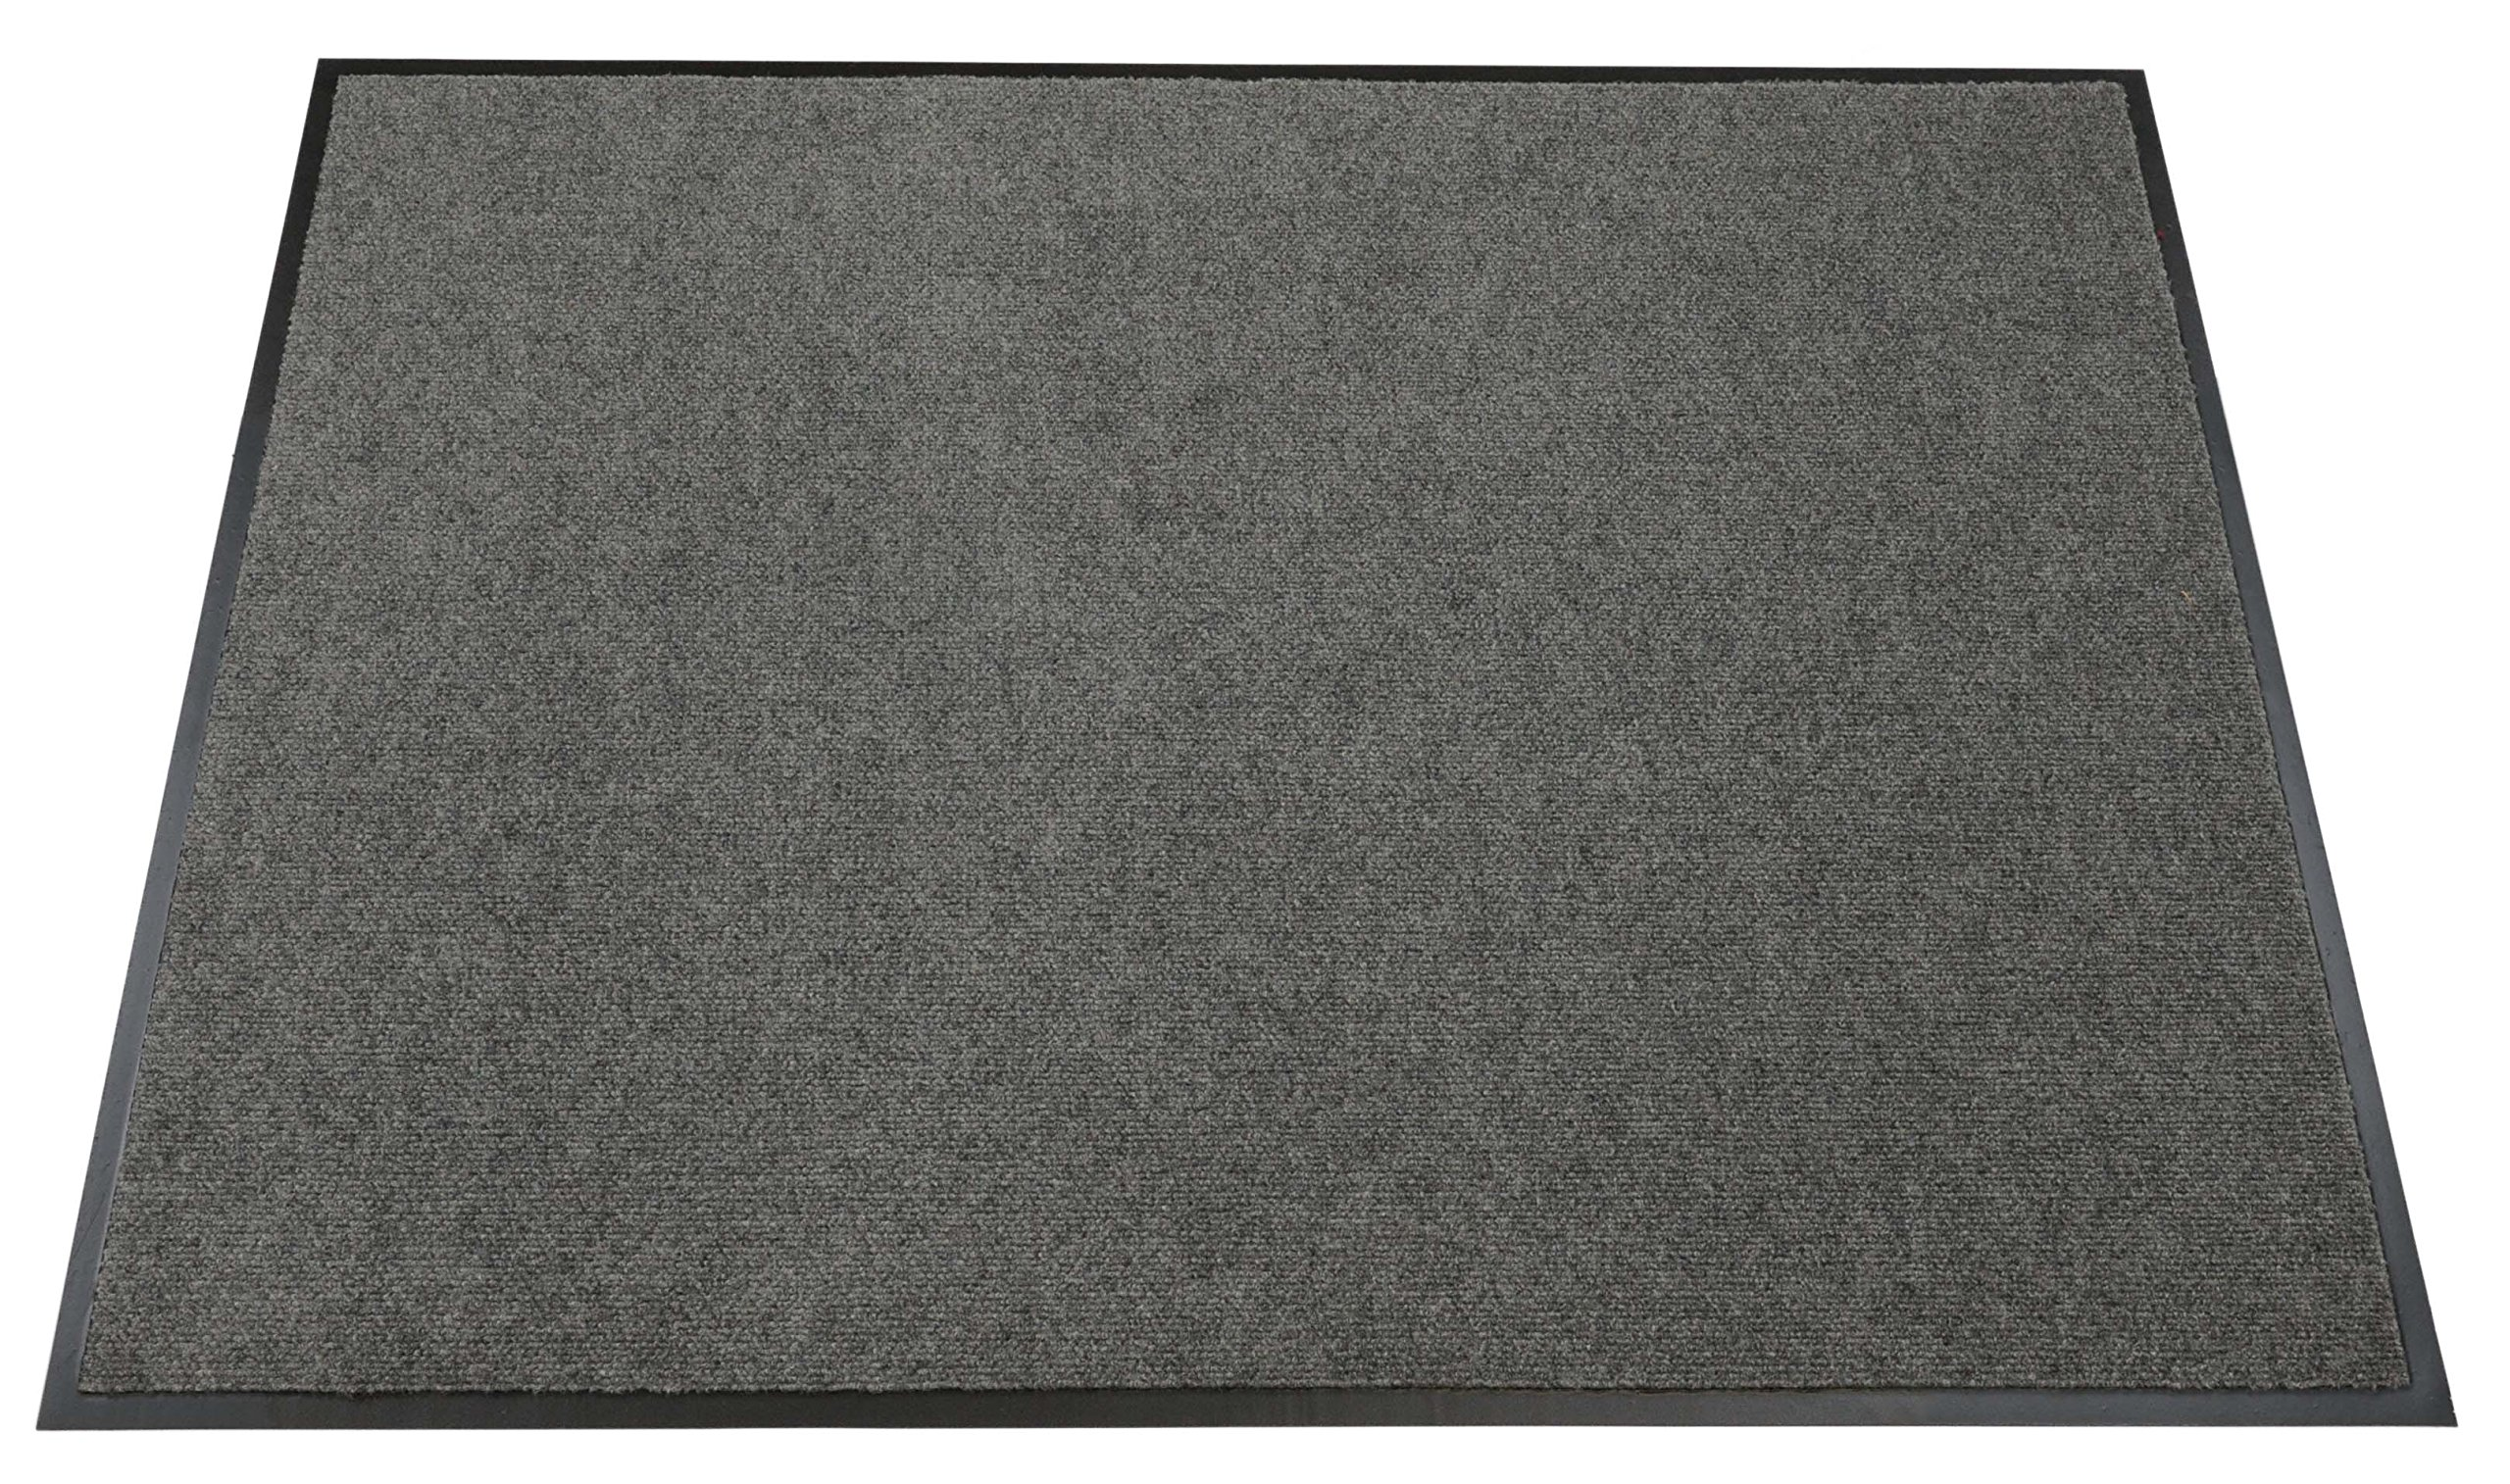 Americo Manufacturing 6406034 Camelot Smooth Ribbed Surface Indoor Matting, 3' x 4', Gray